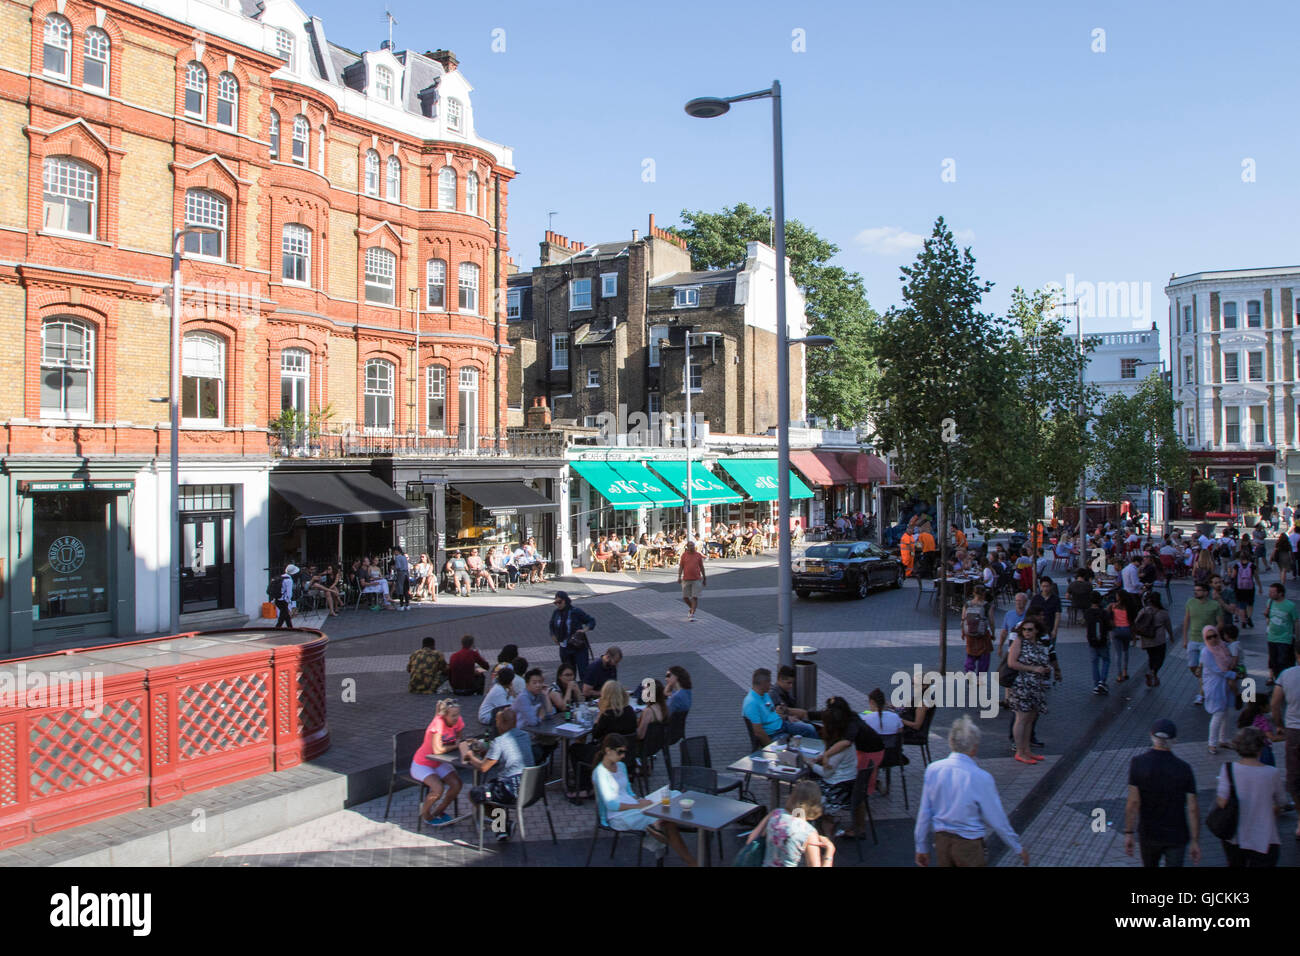 Exhibition Road in the Royal Borough of Kensington and Chelsea and the City of Westminster Greater Central London Stock Photo